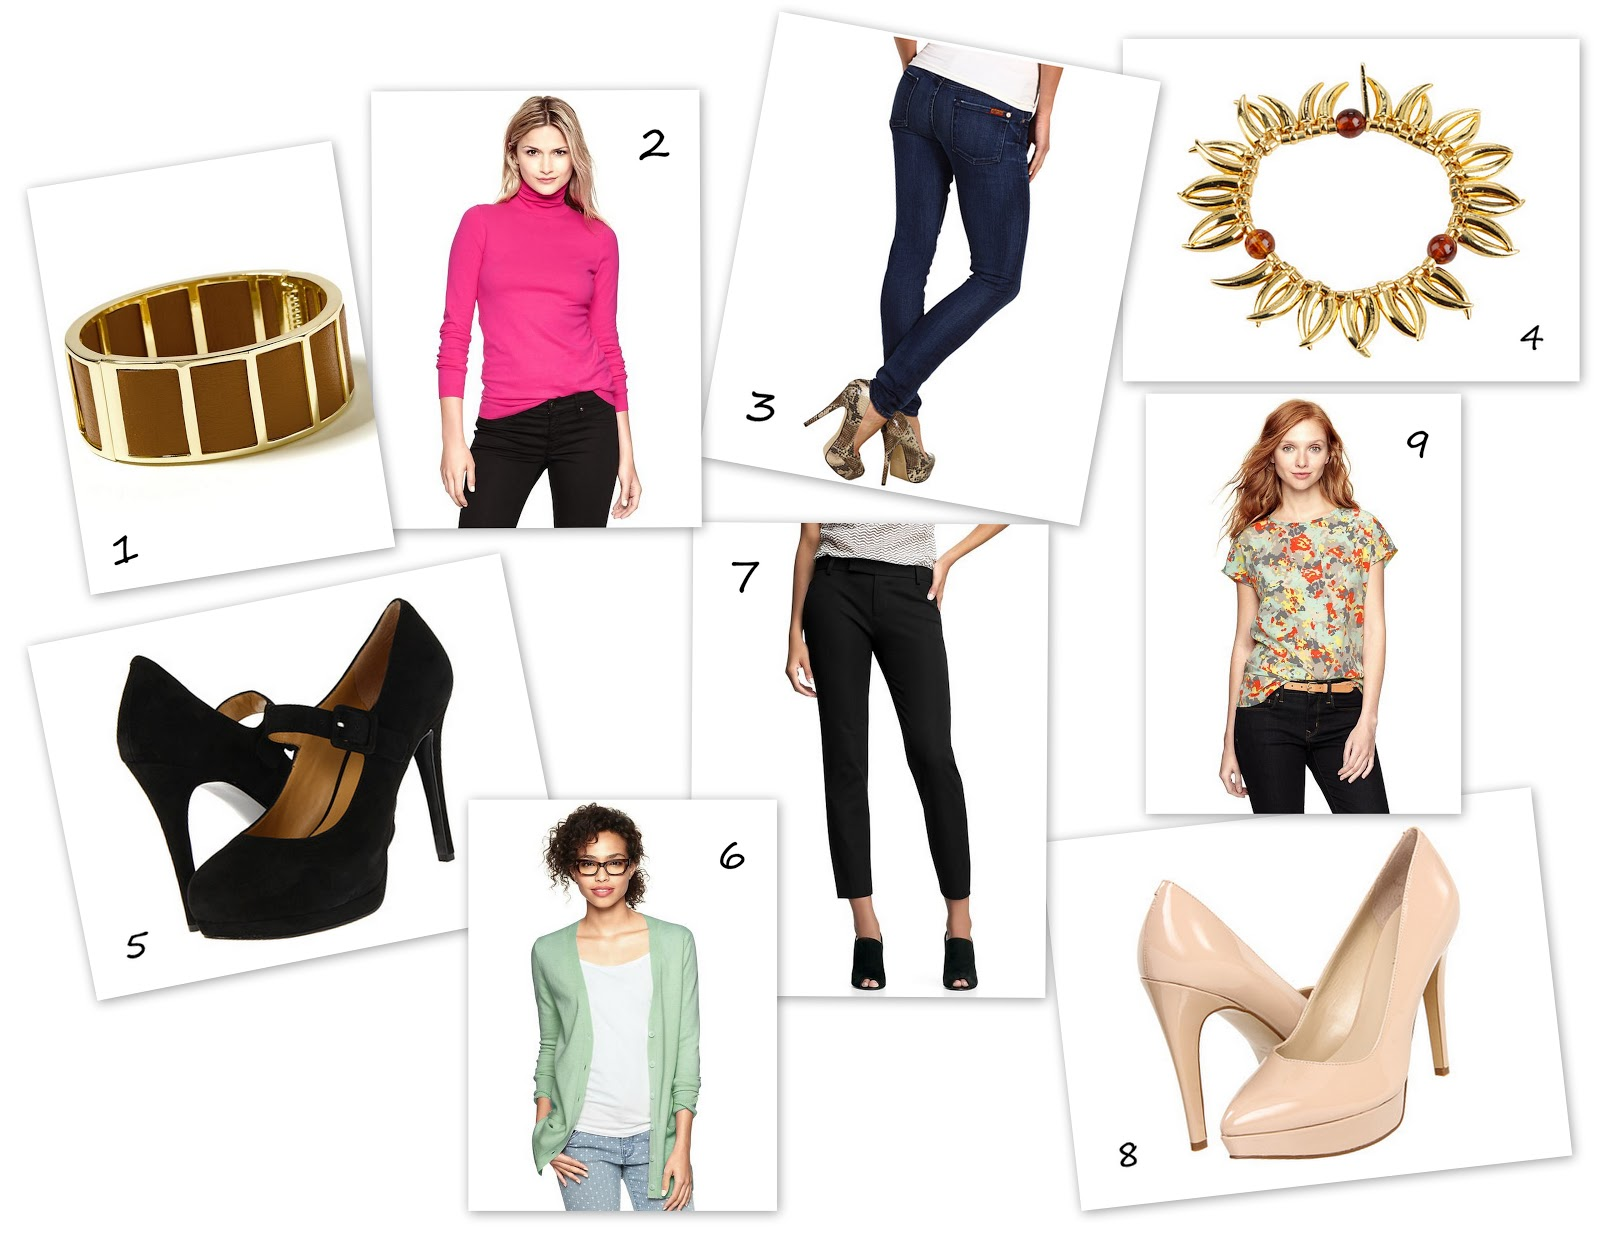 Banana Republic, Gap, 6pm.com, floral blouse, platform shoes, gold bangle bracelet, crop pants, skinny jeans